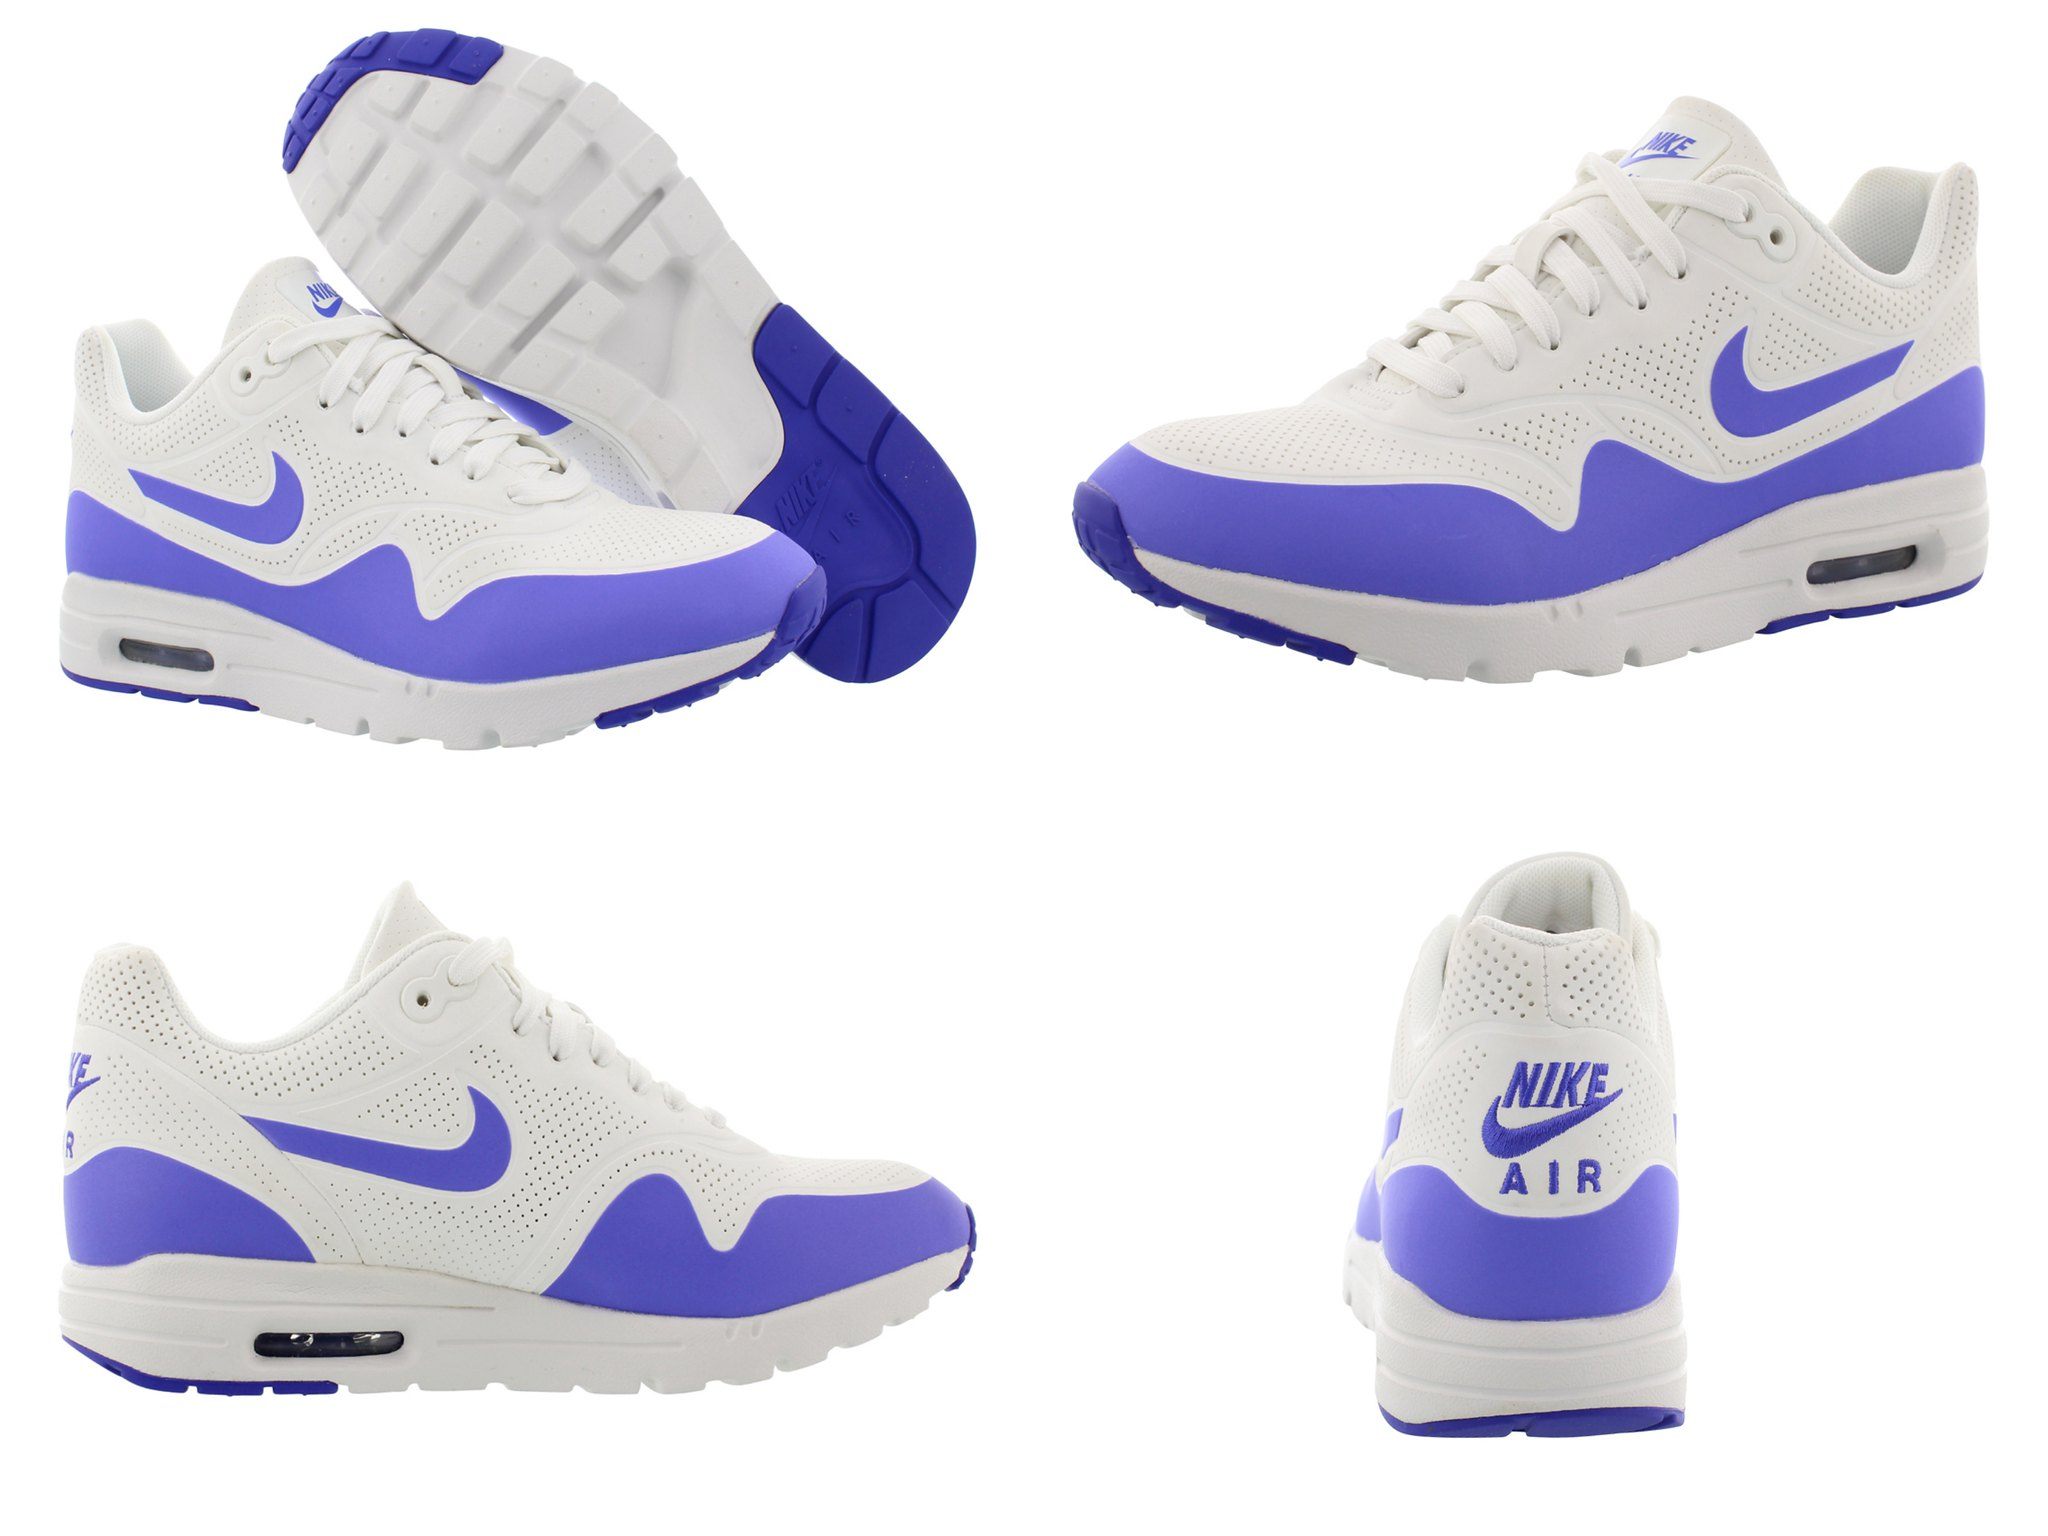 Colectivo sitio esposa  NEW WOMENS NIKE AIR MAX ULTRA MOIRE WHITE VIOLET ATHLETIC RUNNING SHOES  SIZE 11 91209281017 | eBay